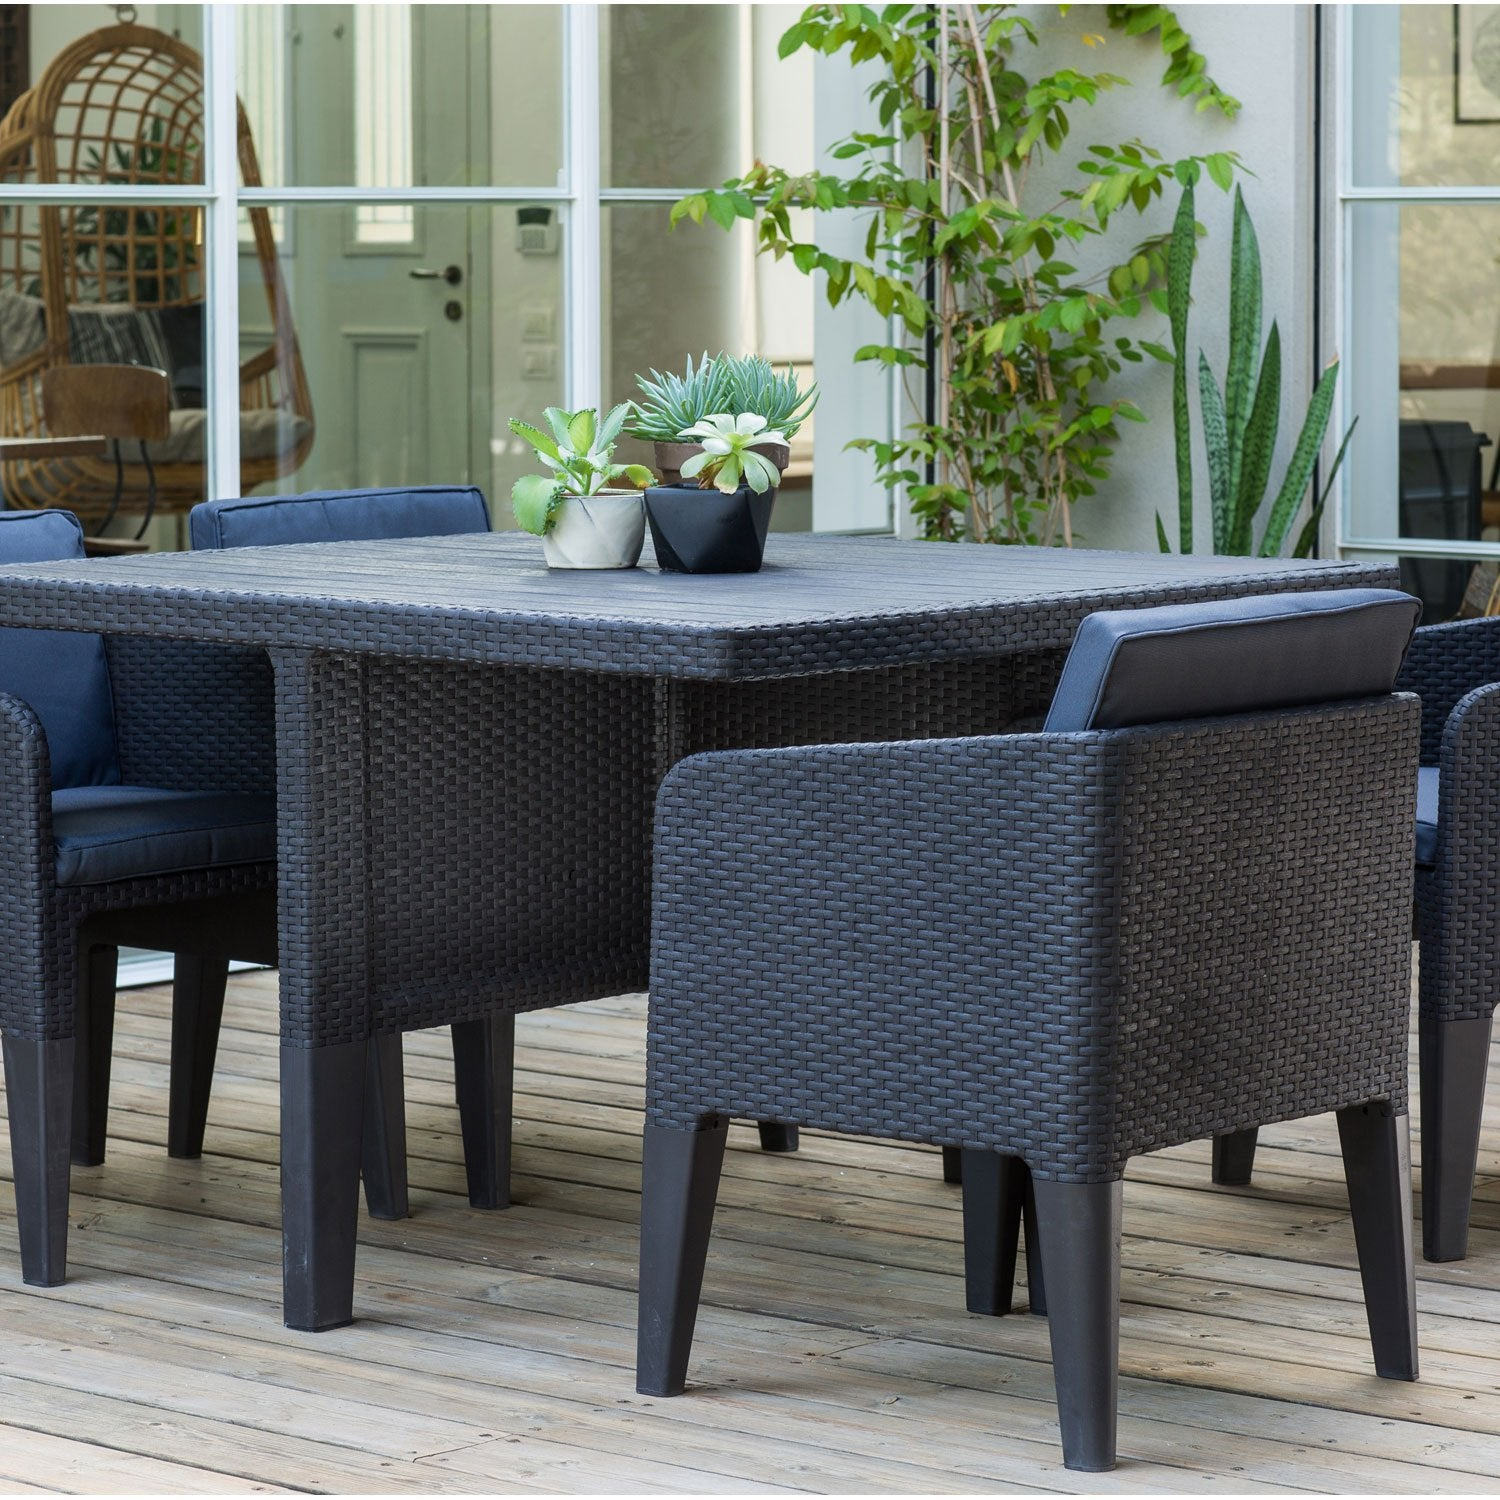 salon de jardin columbia gris anthracite 4 personnes leroy merlin. Black Bedroom Furniture Sets. Home Design Ideas